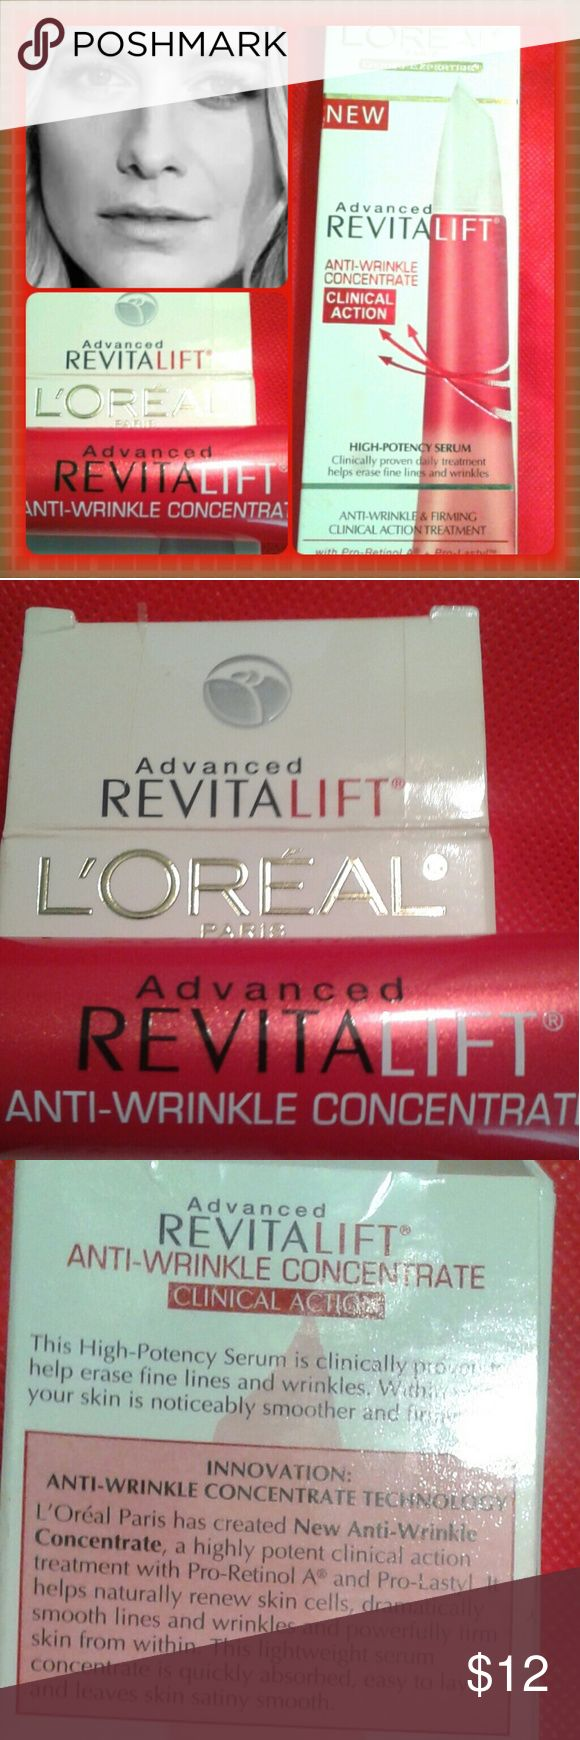 Loreal ( SALE L'Or?al Wrinkle Cream /not used /Sealed / L'OR?AL Makeup Eye Primer